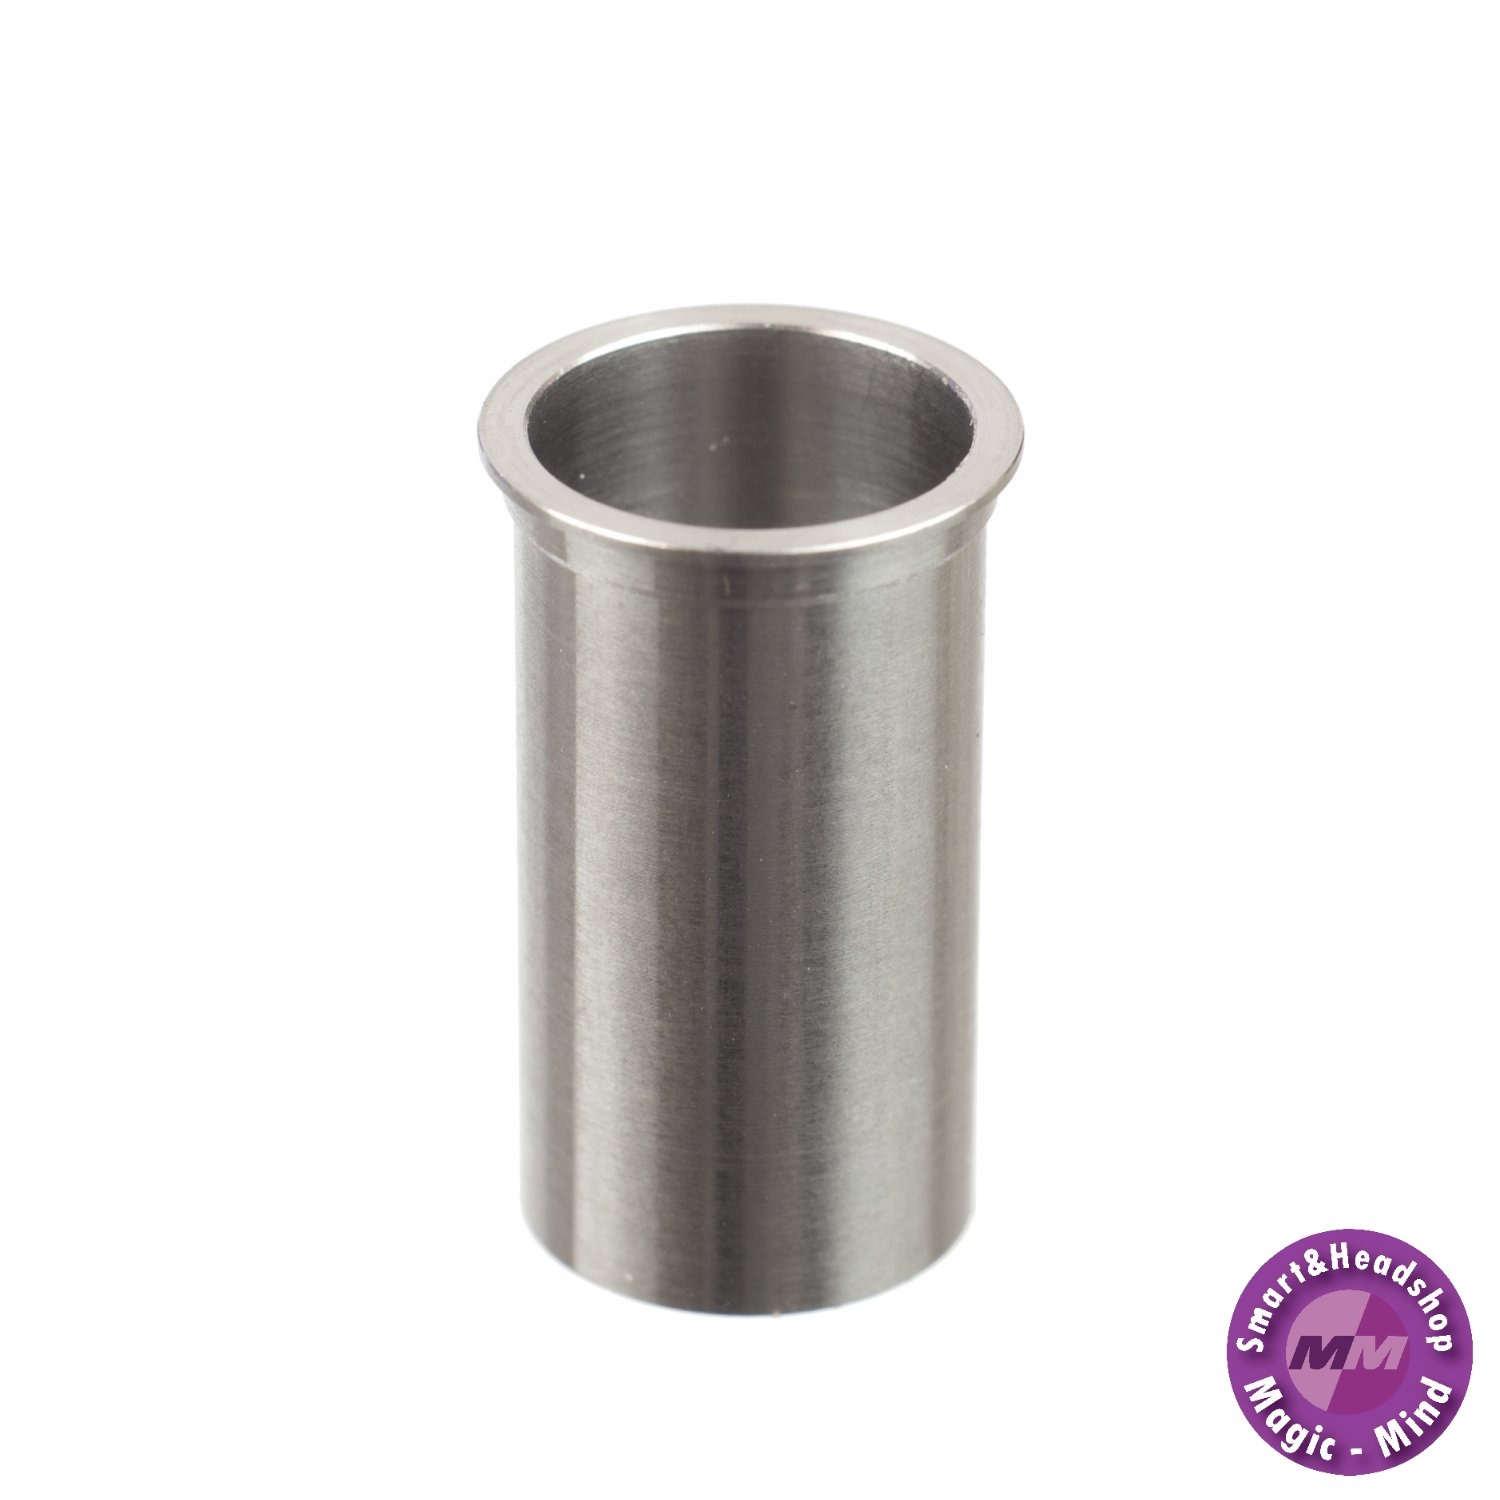 Storm Storm steel concentrate capsule